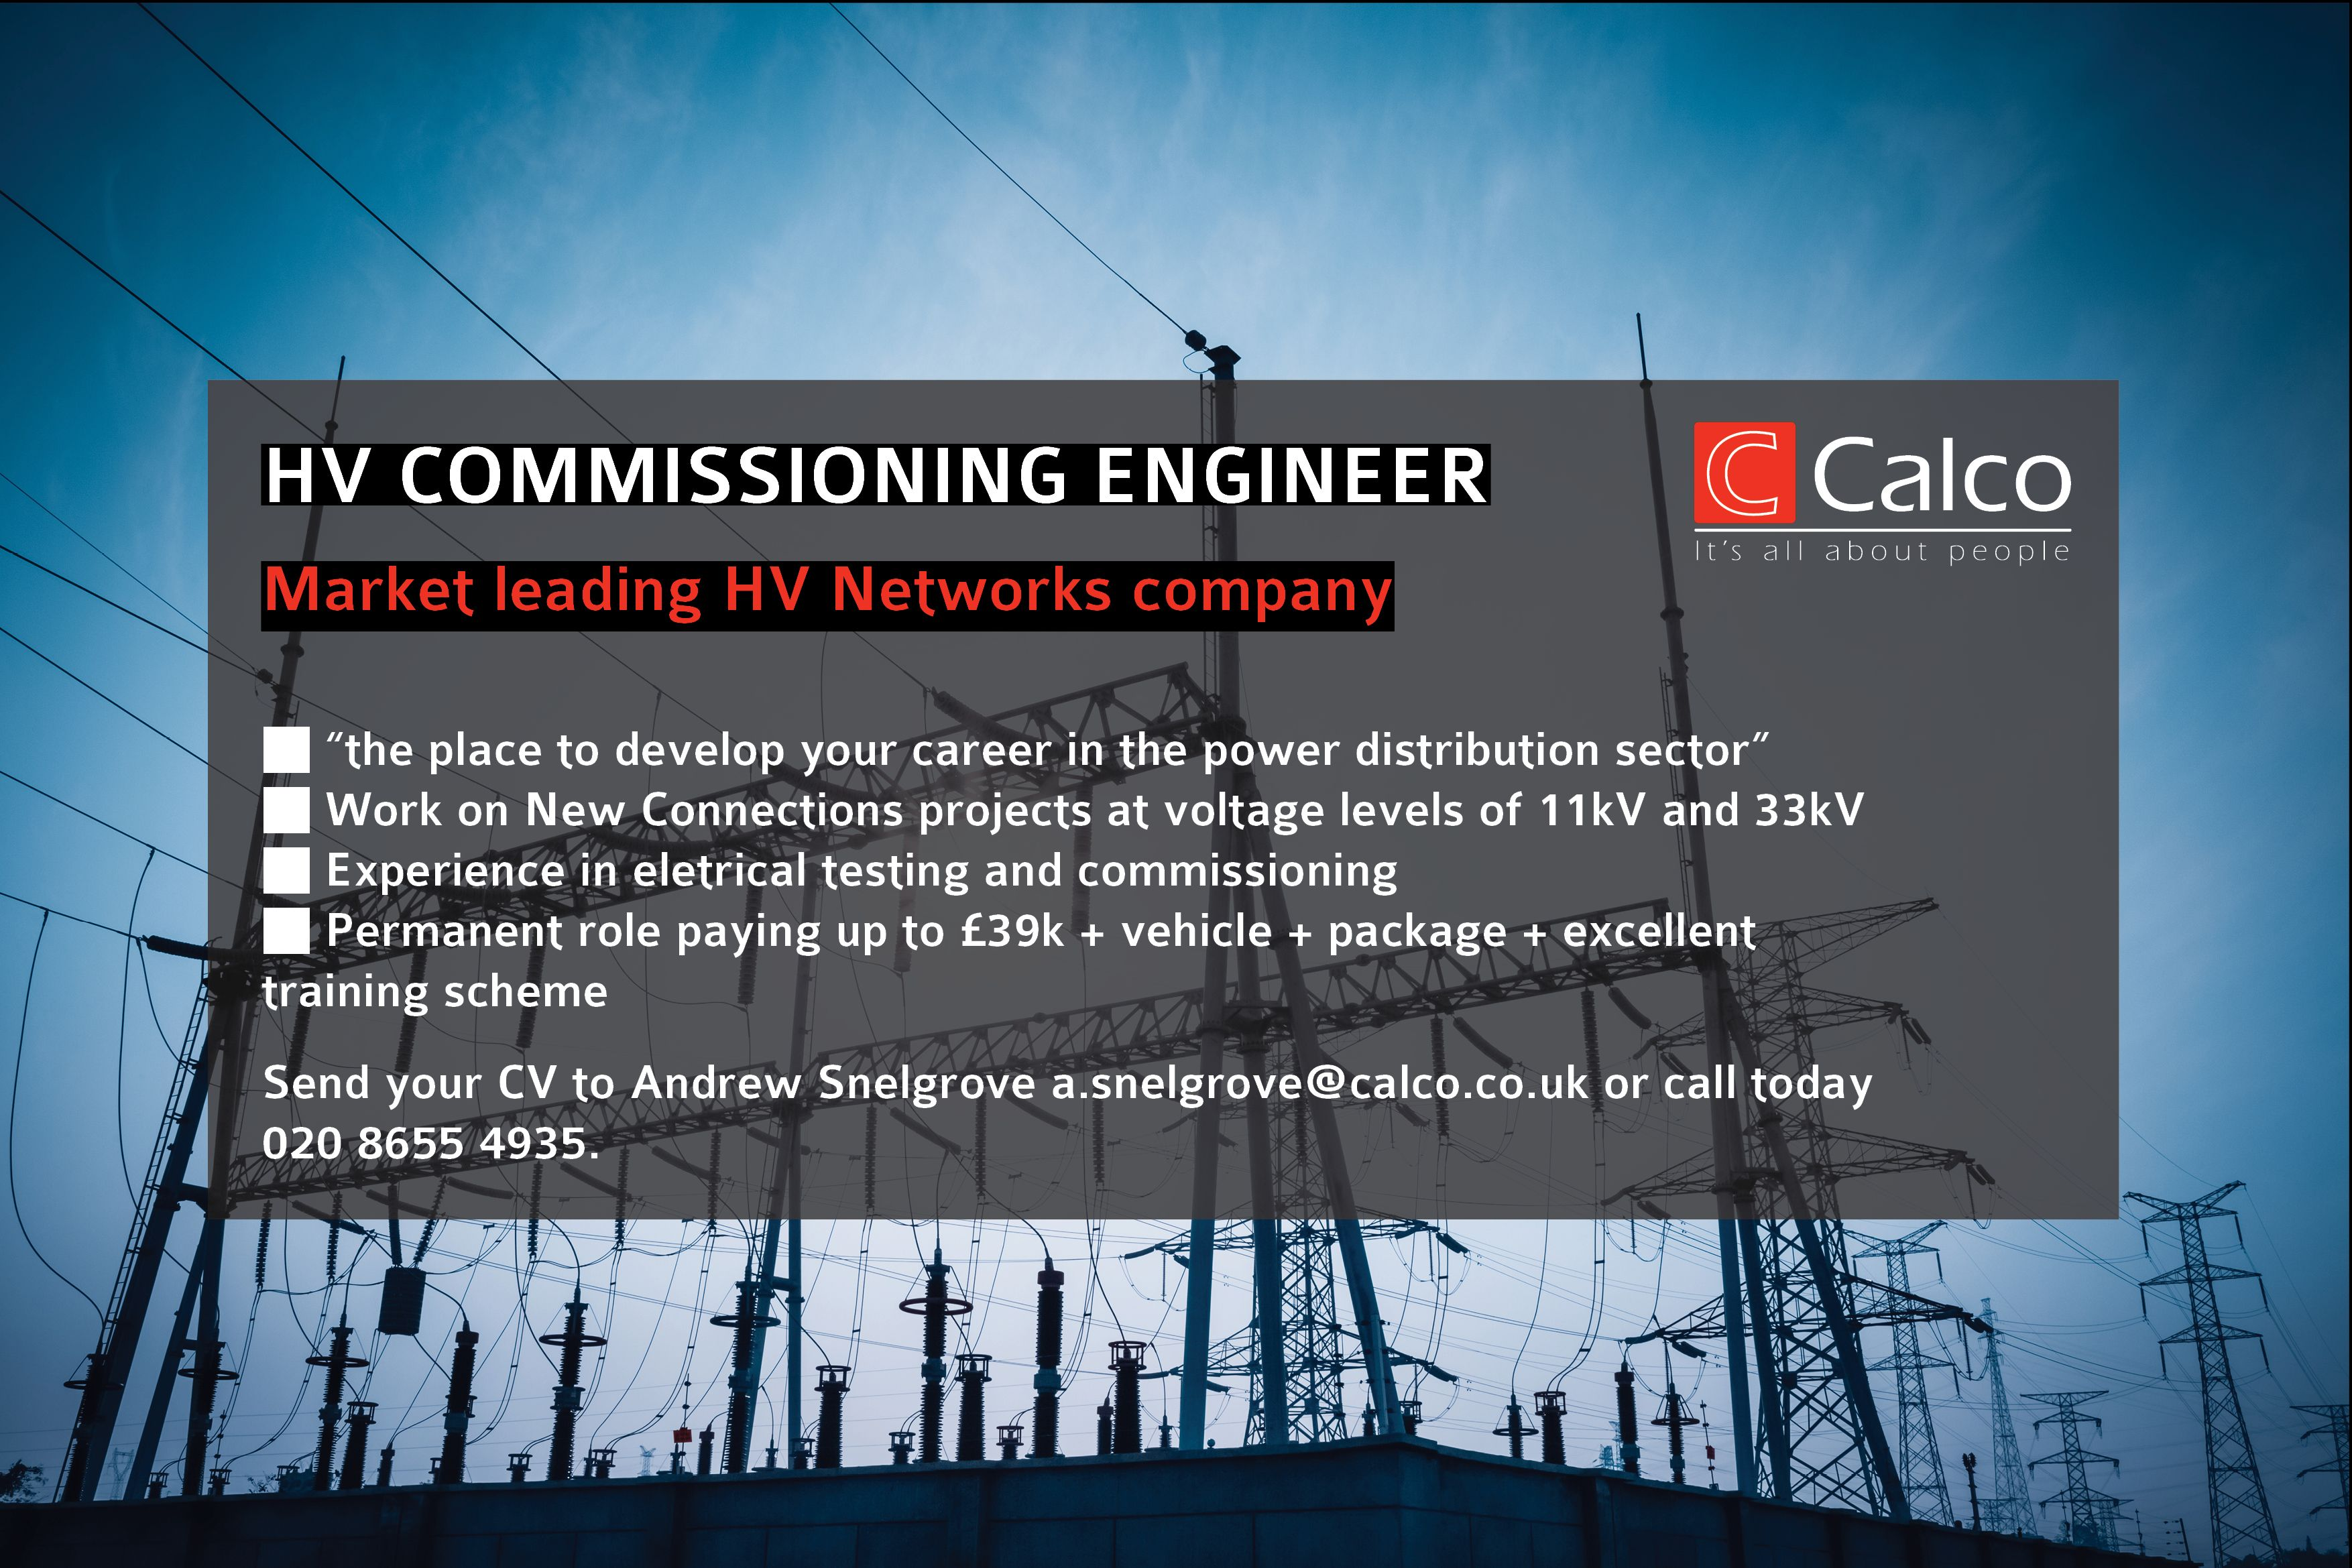 HV Commissioning Engineer CalcoRecruit Networking